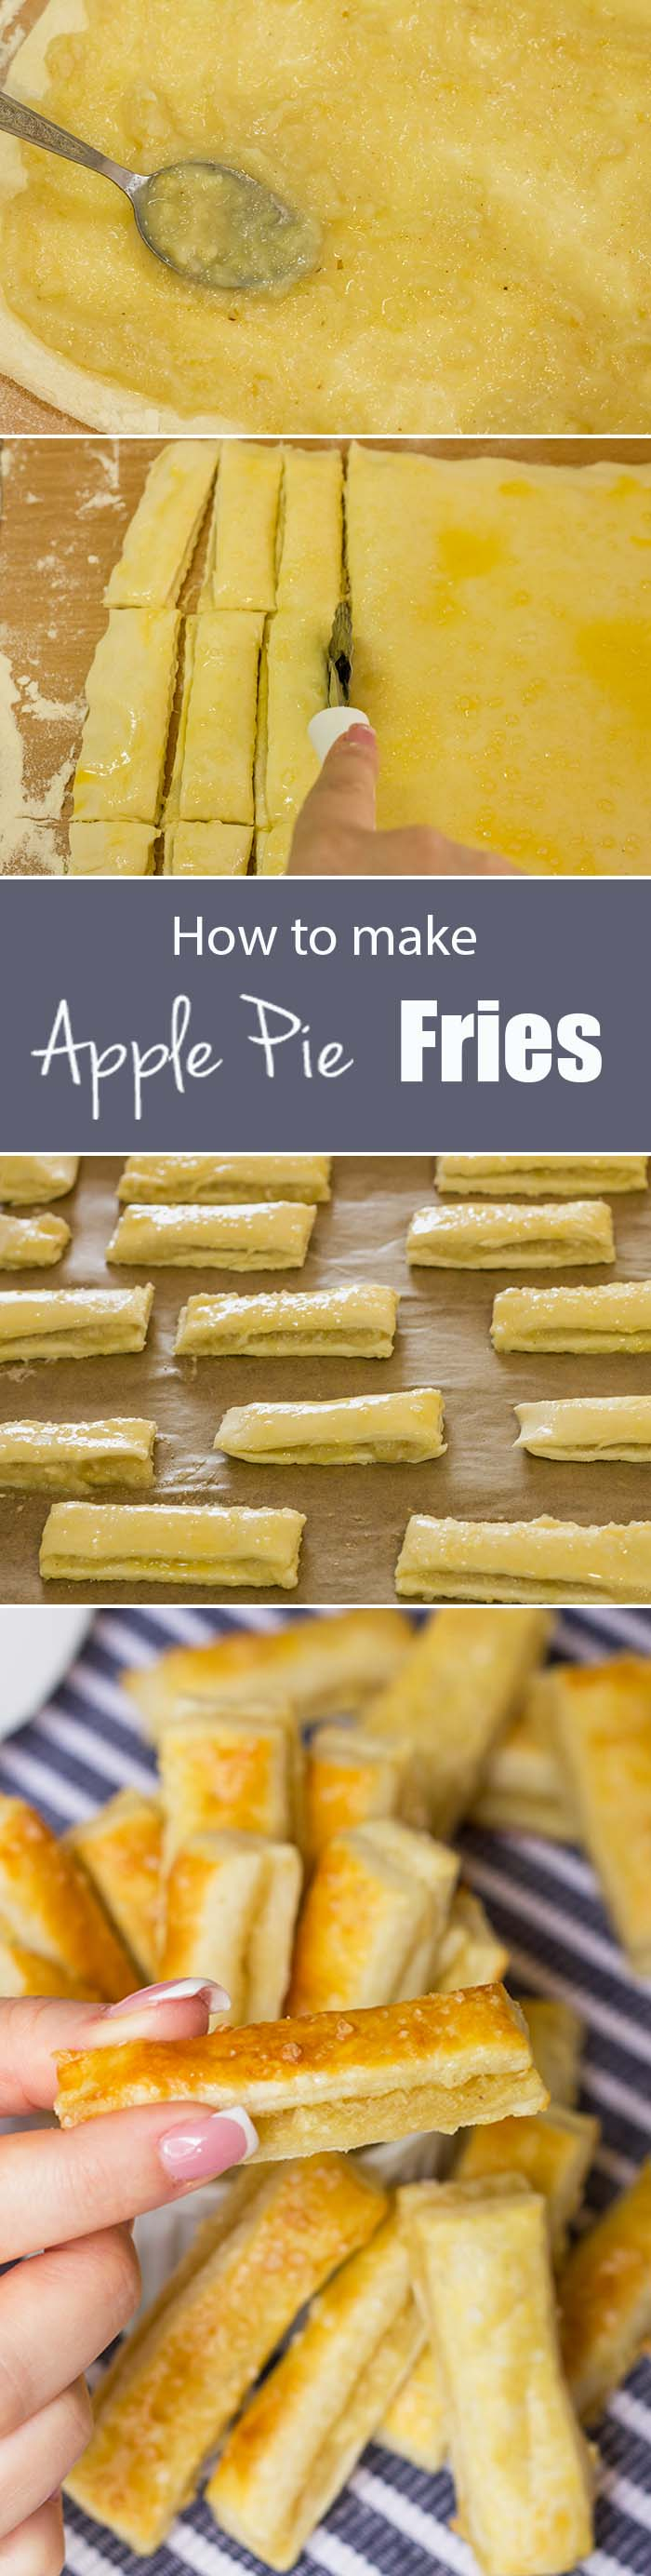 Apple Pie Fries Recipe | Page 2 of 2 | Cakescottage